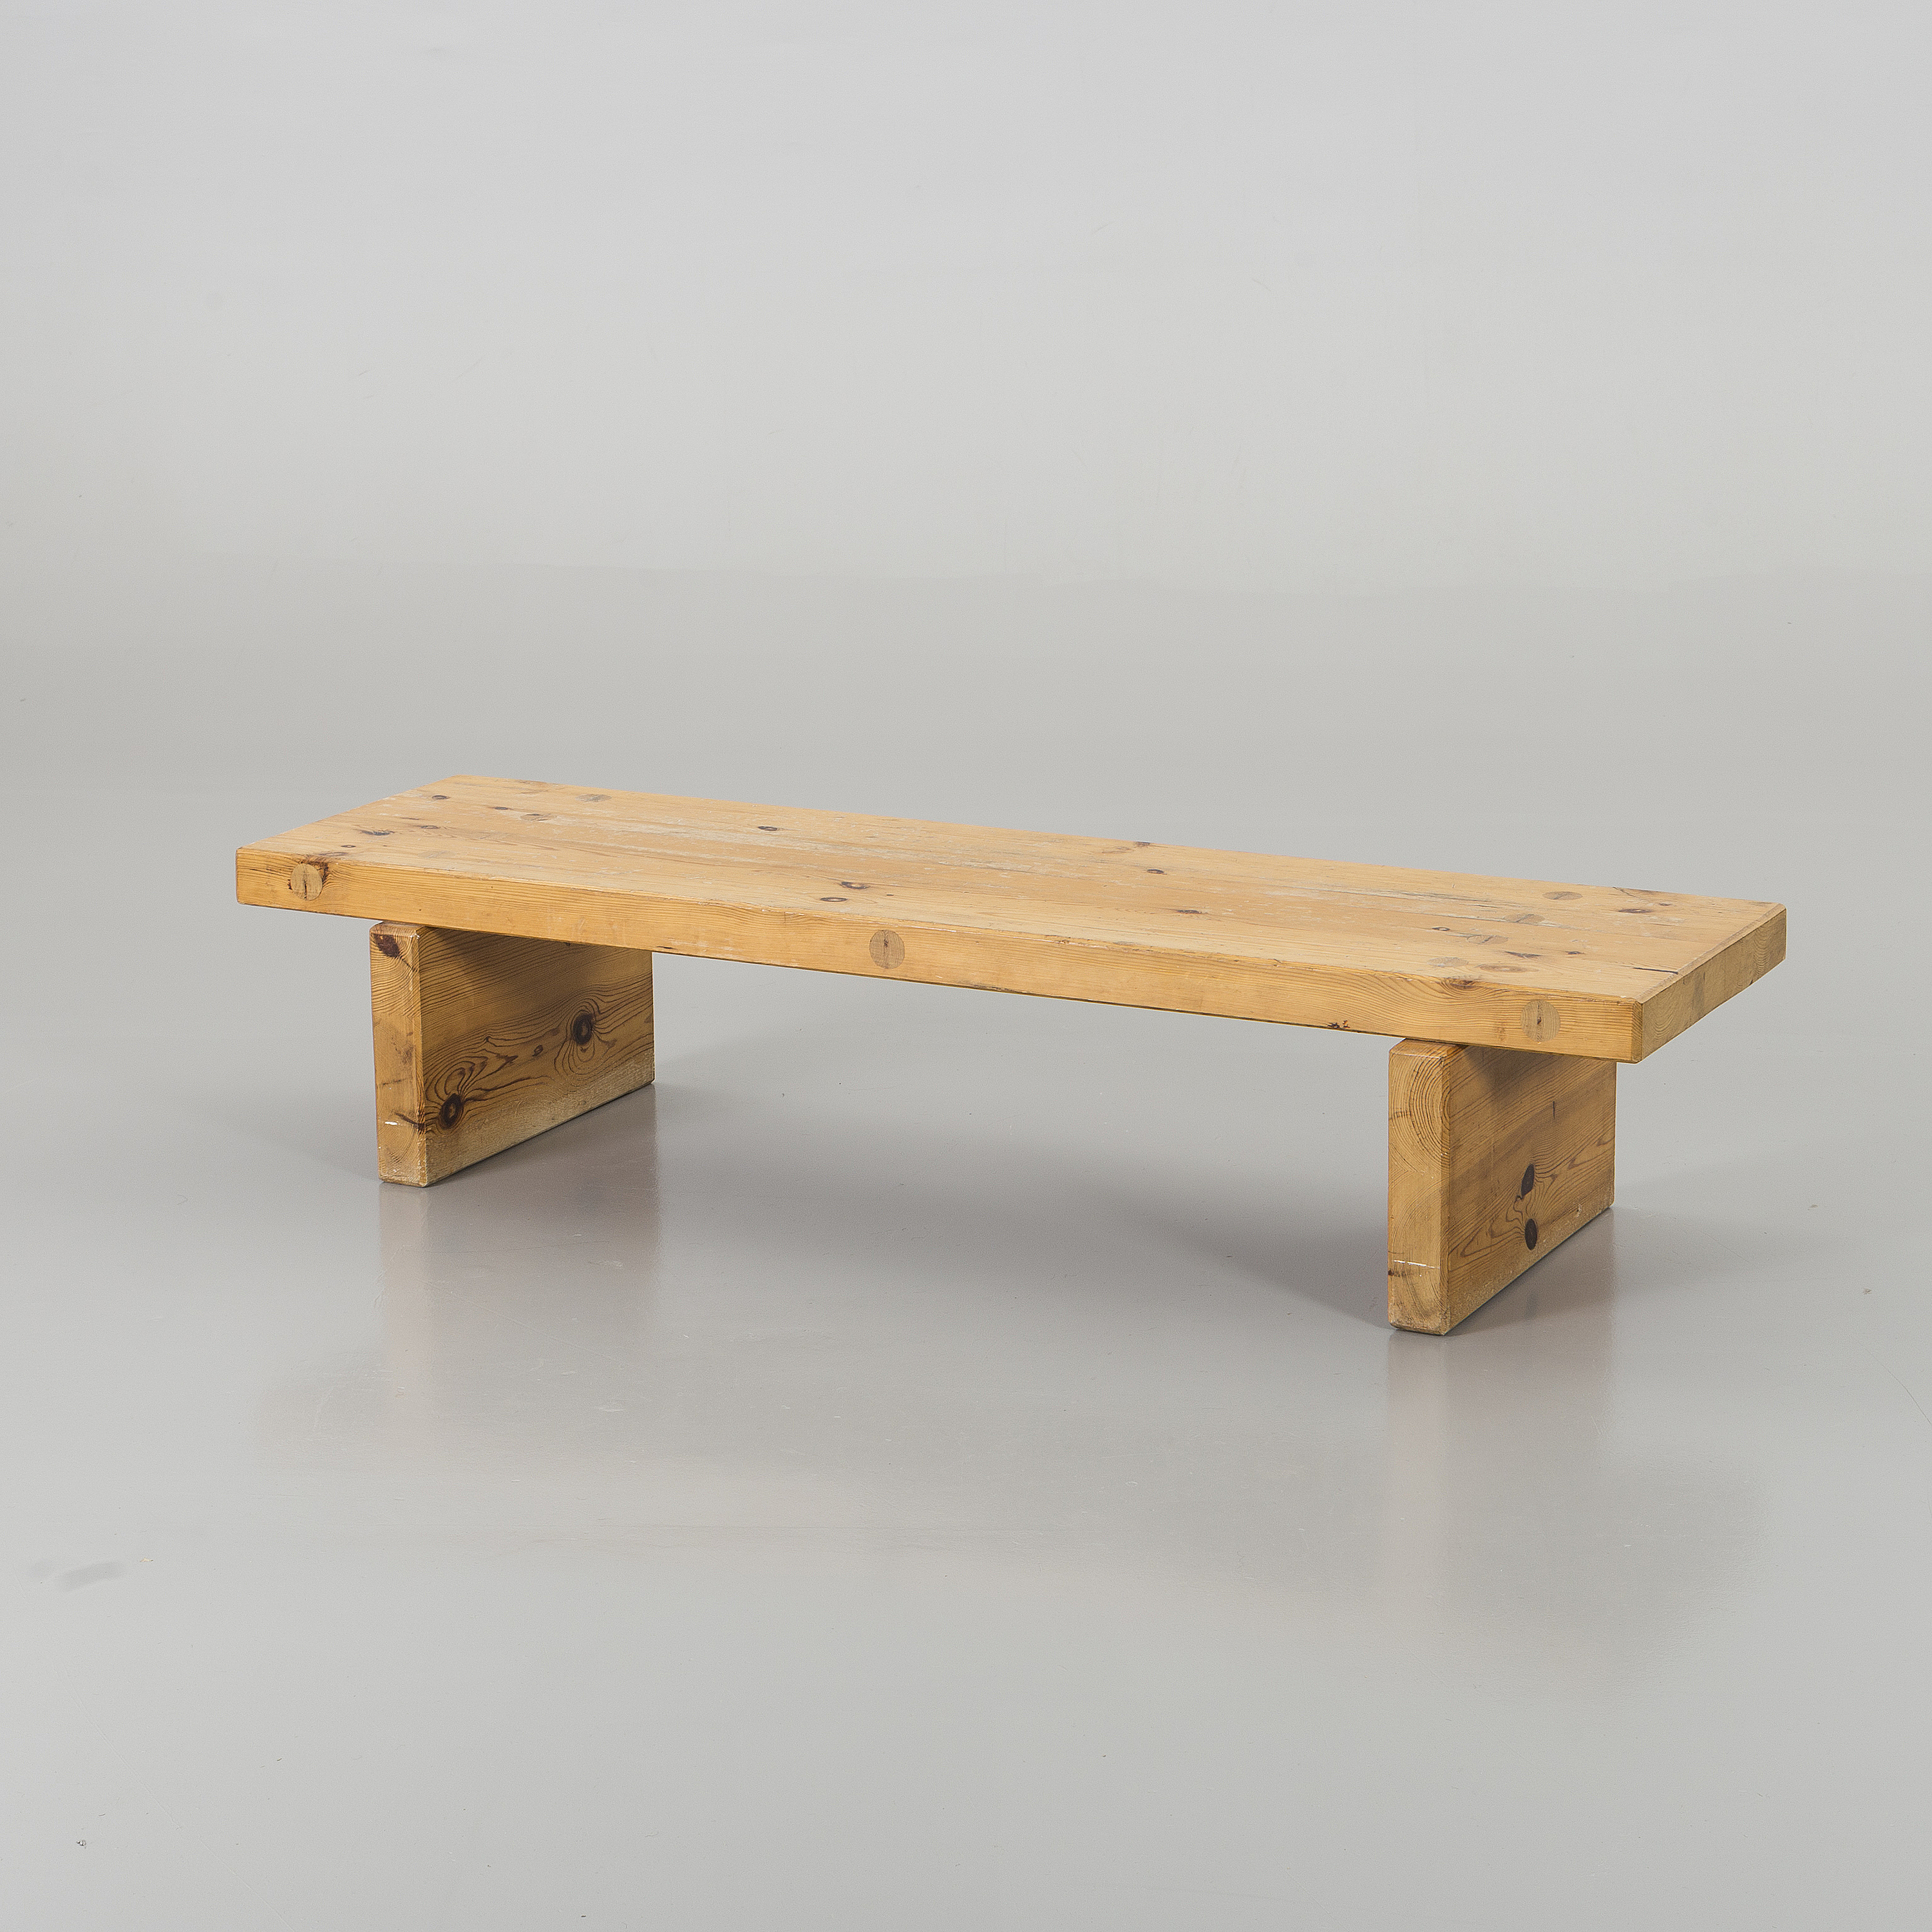 Terrific A Wooden Bench By Roland Wilhelmsson Dated 1974 Bukowskis Pdpeps Interior Chair Design Pdpepsorg